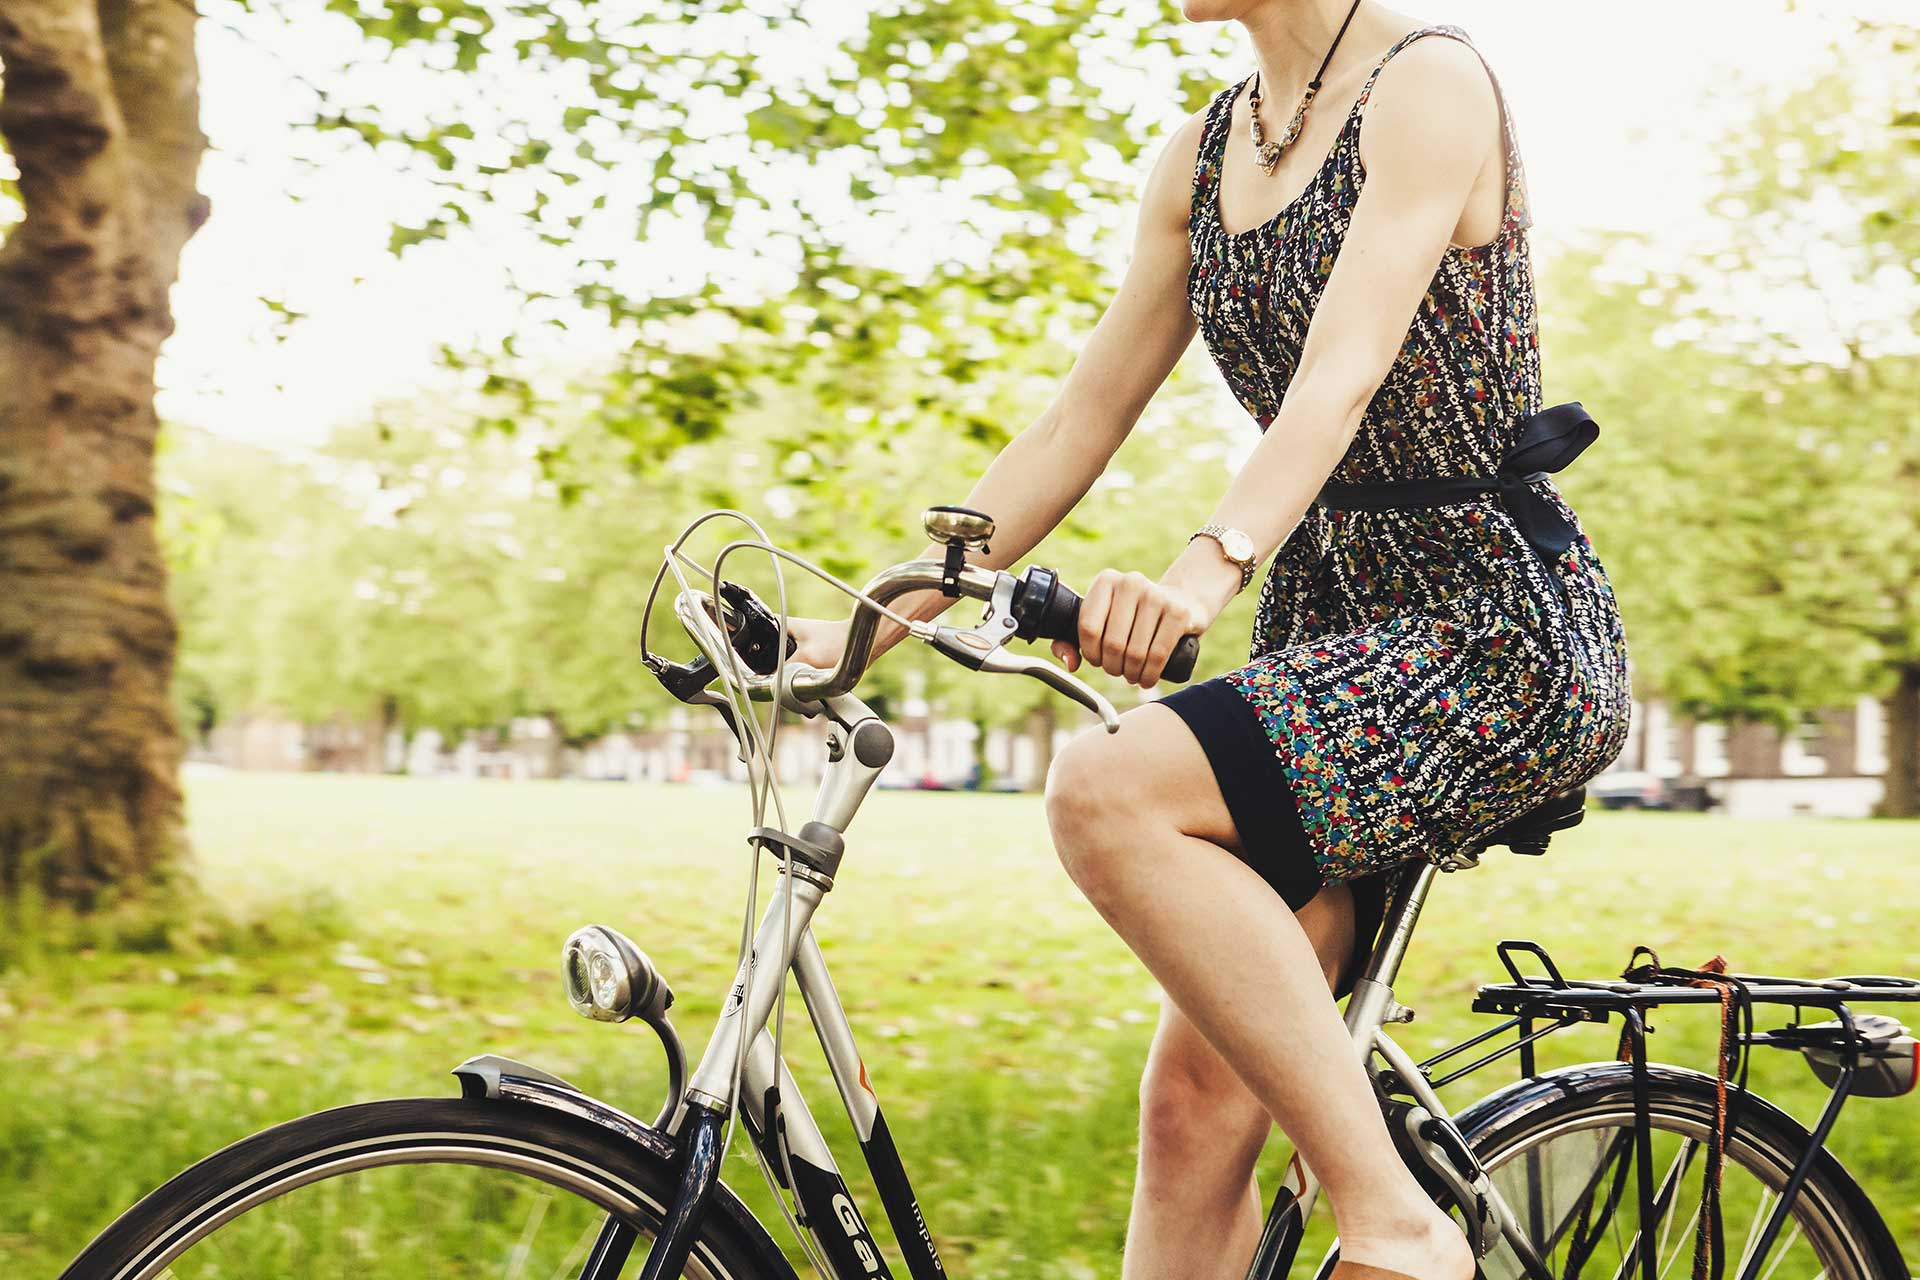 a woman in a flowery dress riding a cruiser bicycle in nature